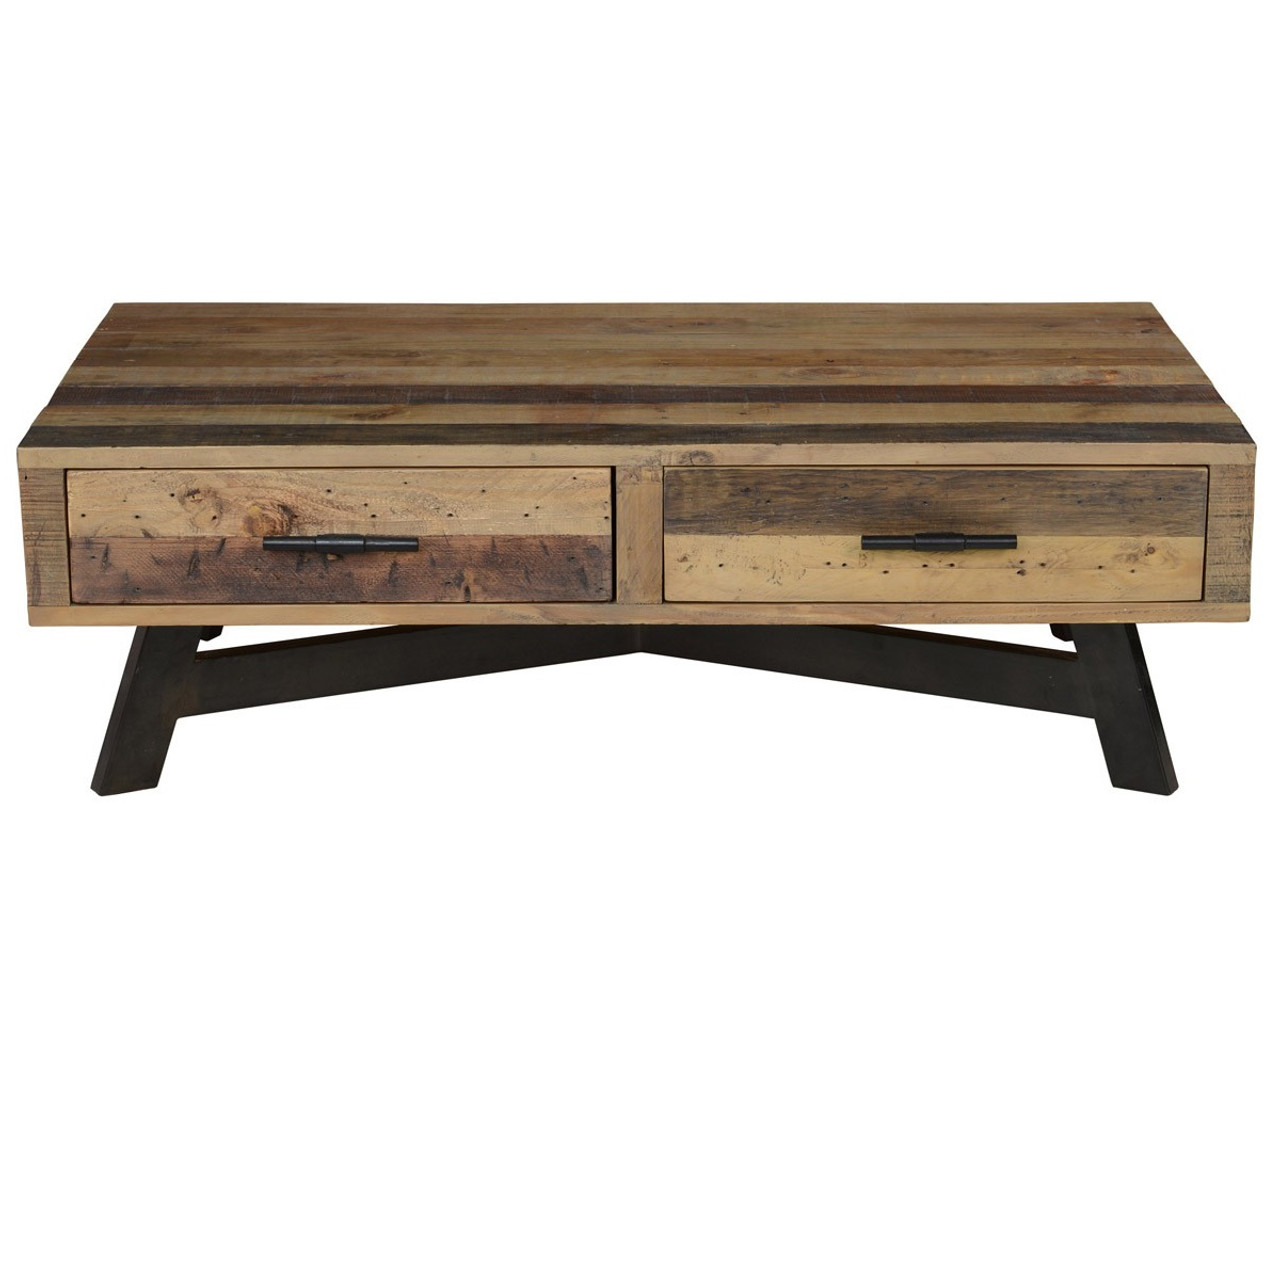 Farmhouse Kitchen Table With Drawers: Farmhouse Reclaimed Wood Coffee Table With 2 Drawers